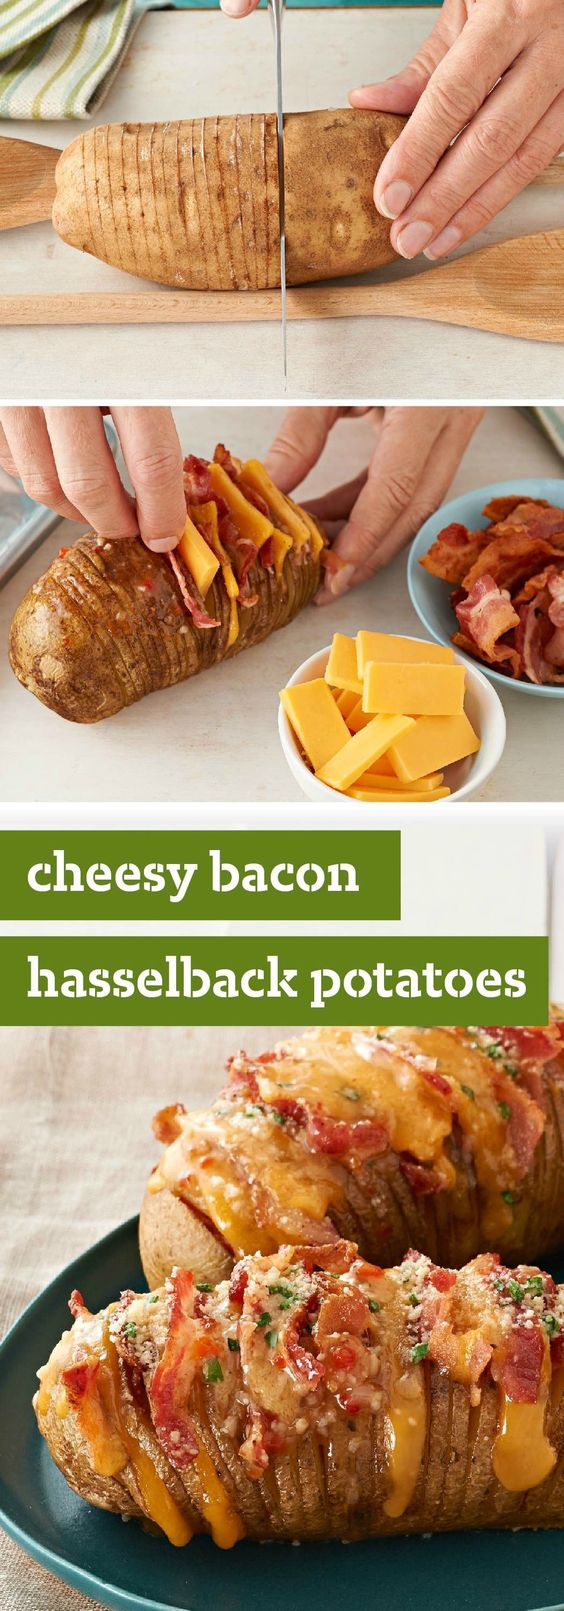 Cheesy Bacon Hasselback Potatoes €� Hasselback Potatoes Always Look Great On  A Plate This Cheesy